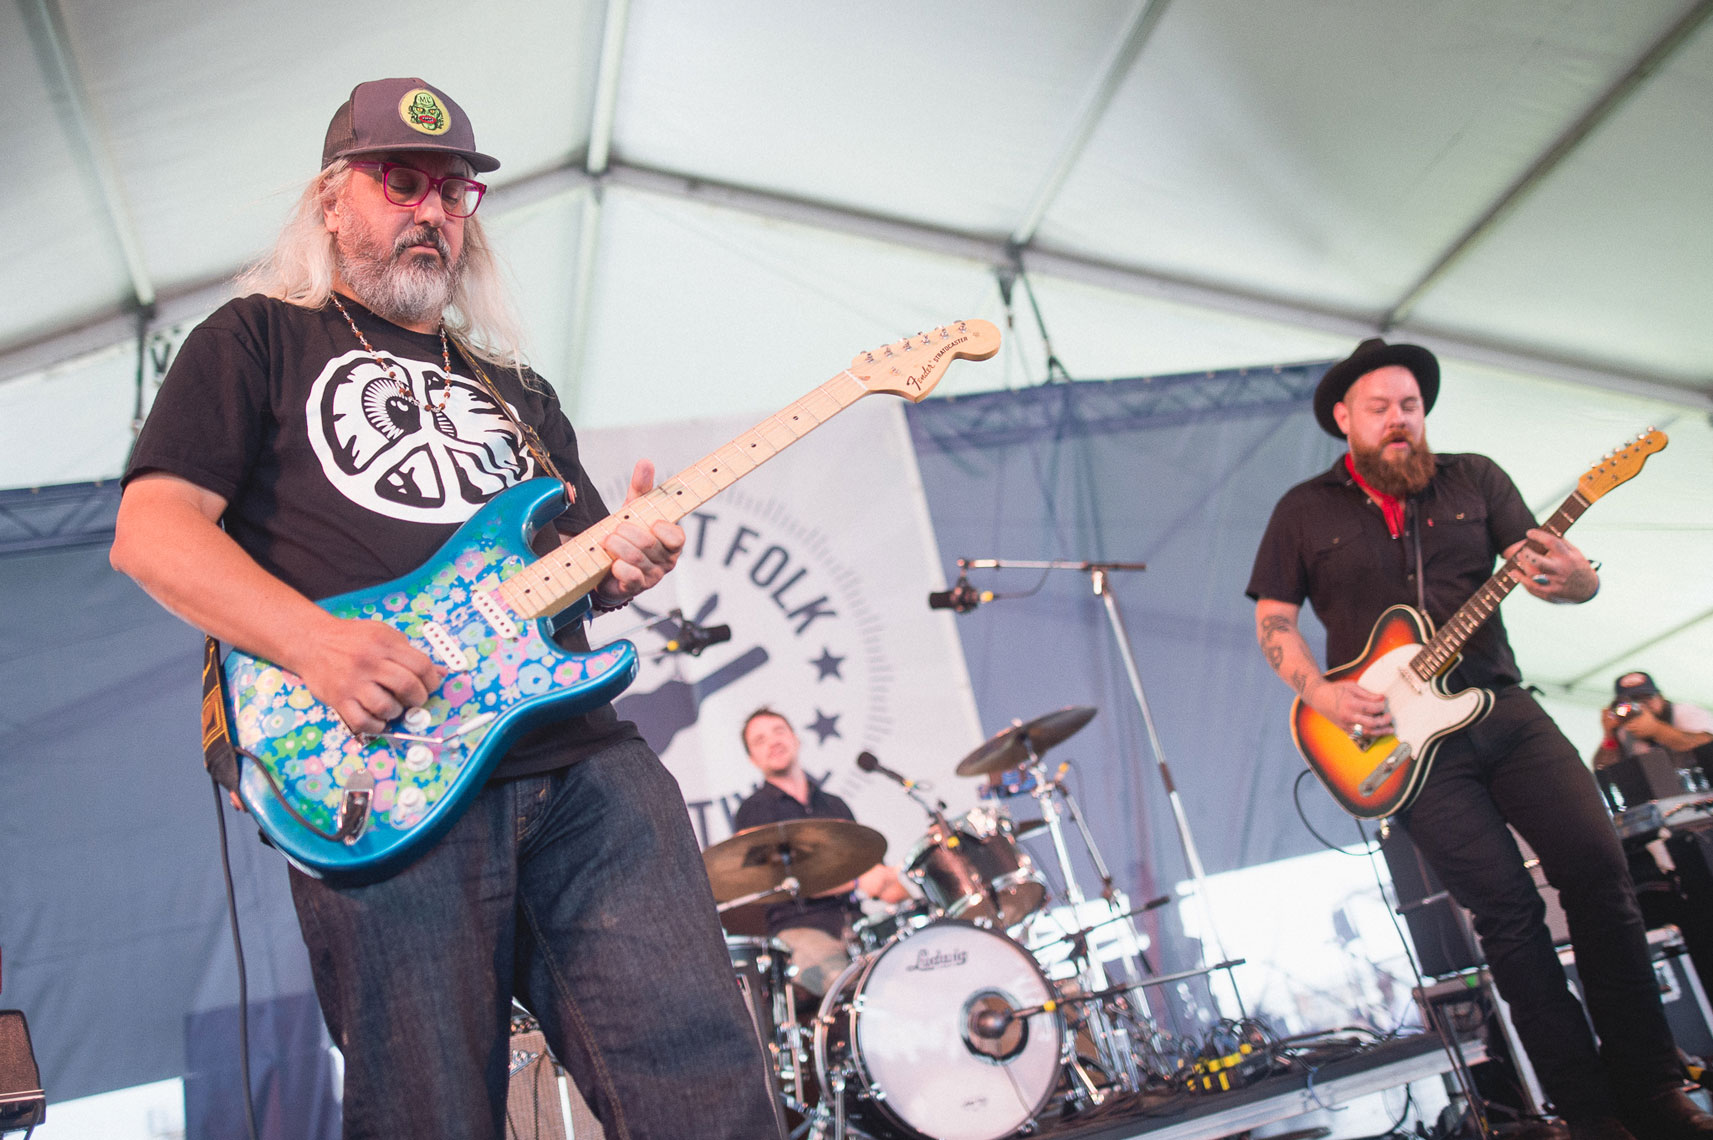 Nathaniel-Rateliff-and-the-Night-Sweats-with-J-Mascis